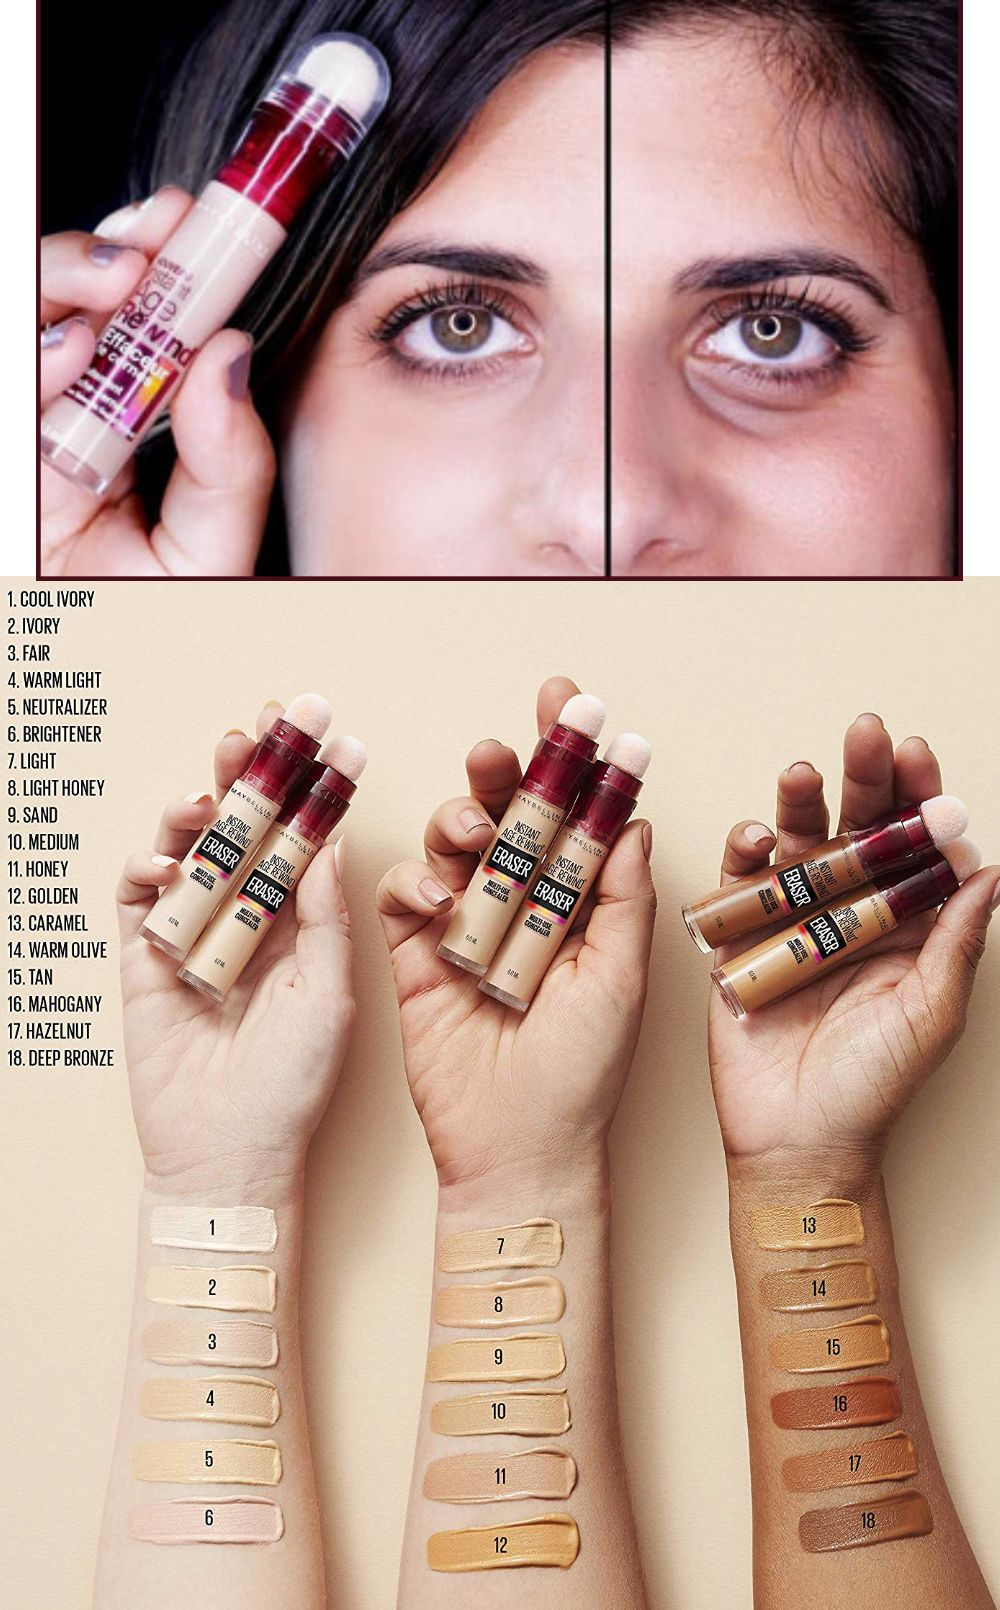 44+ Maybelline instant anti age concealer light inspirations